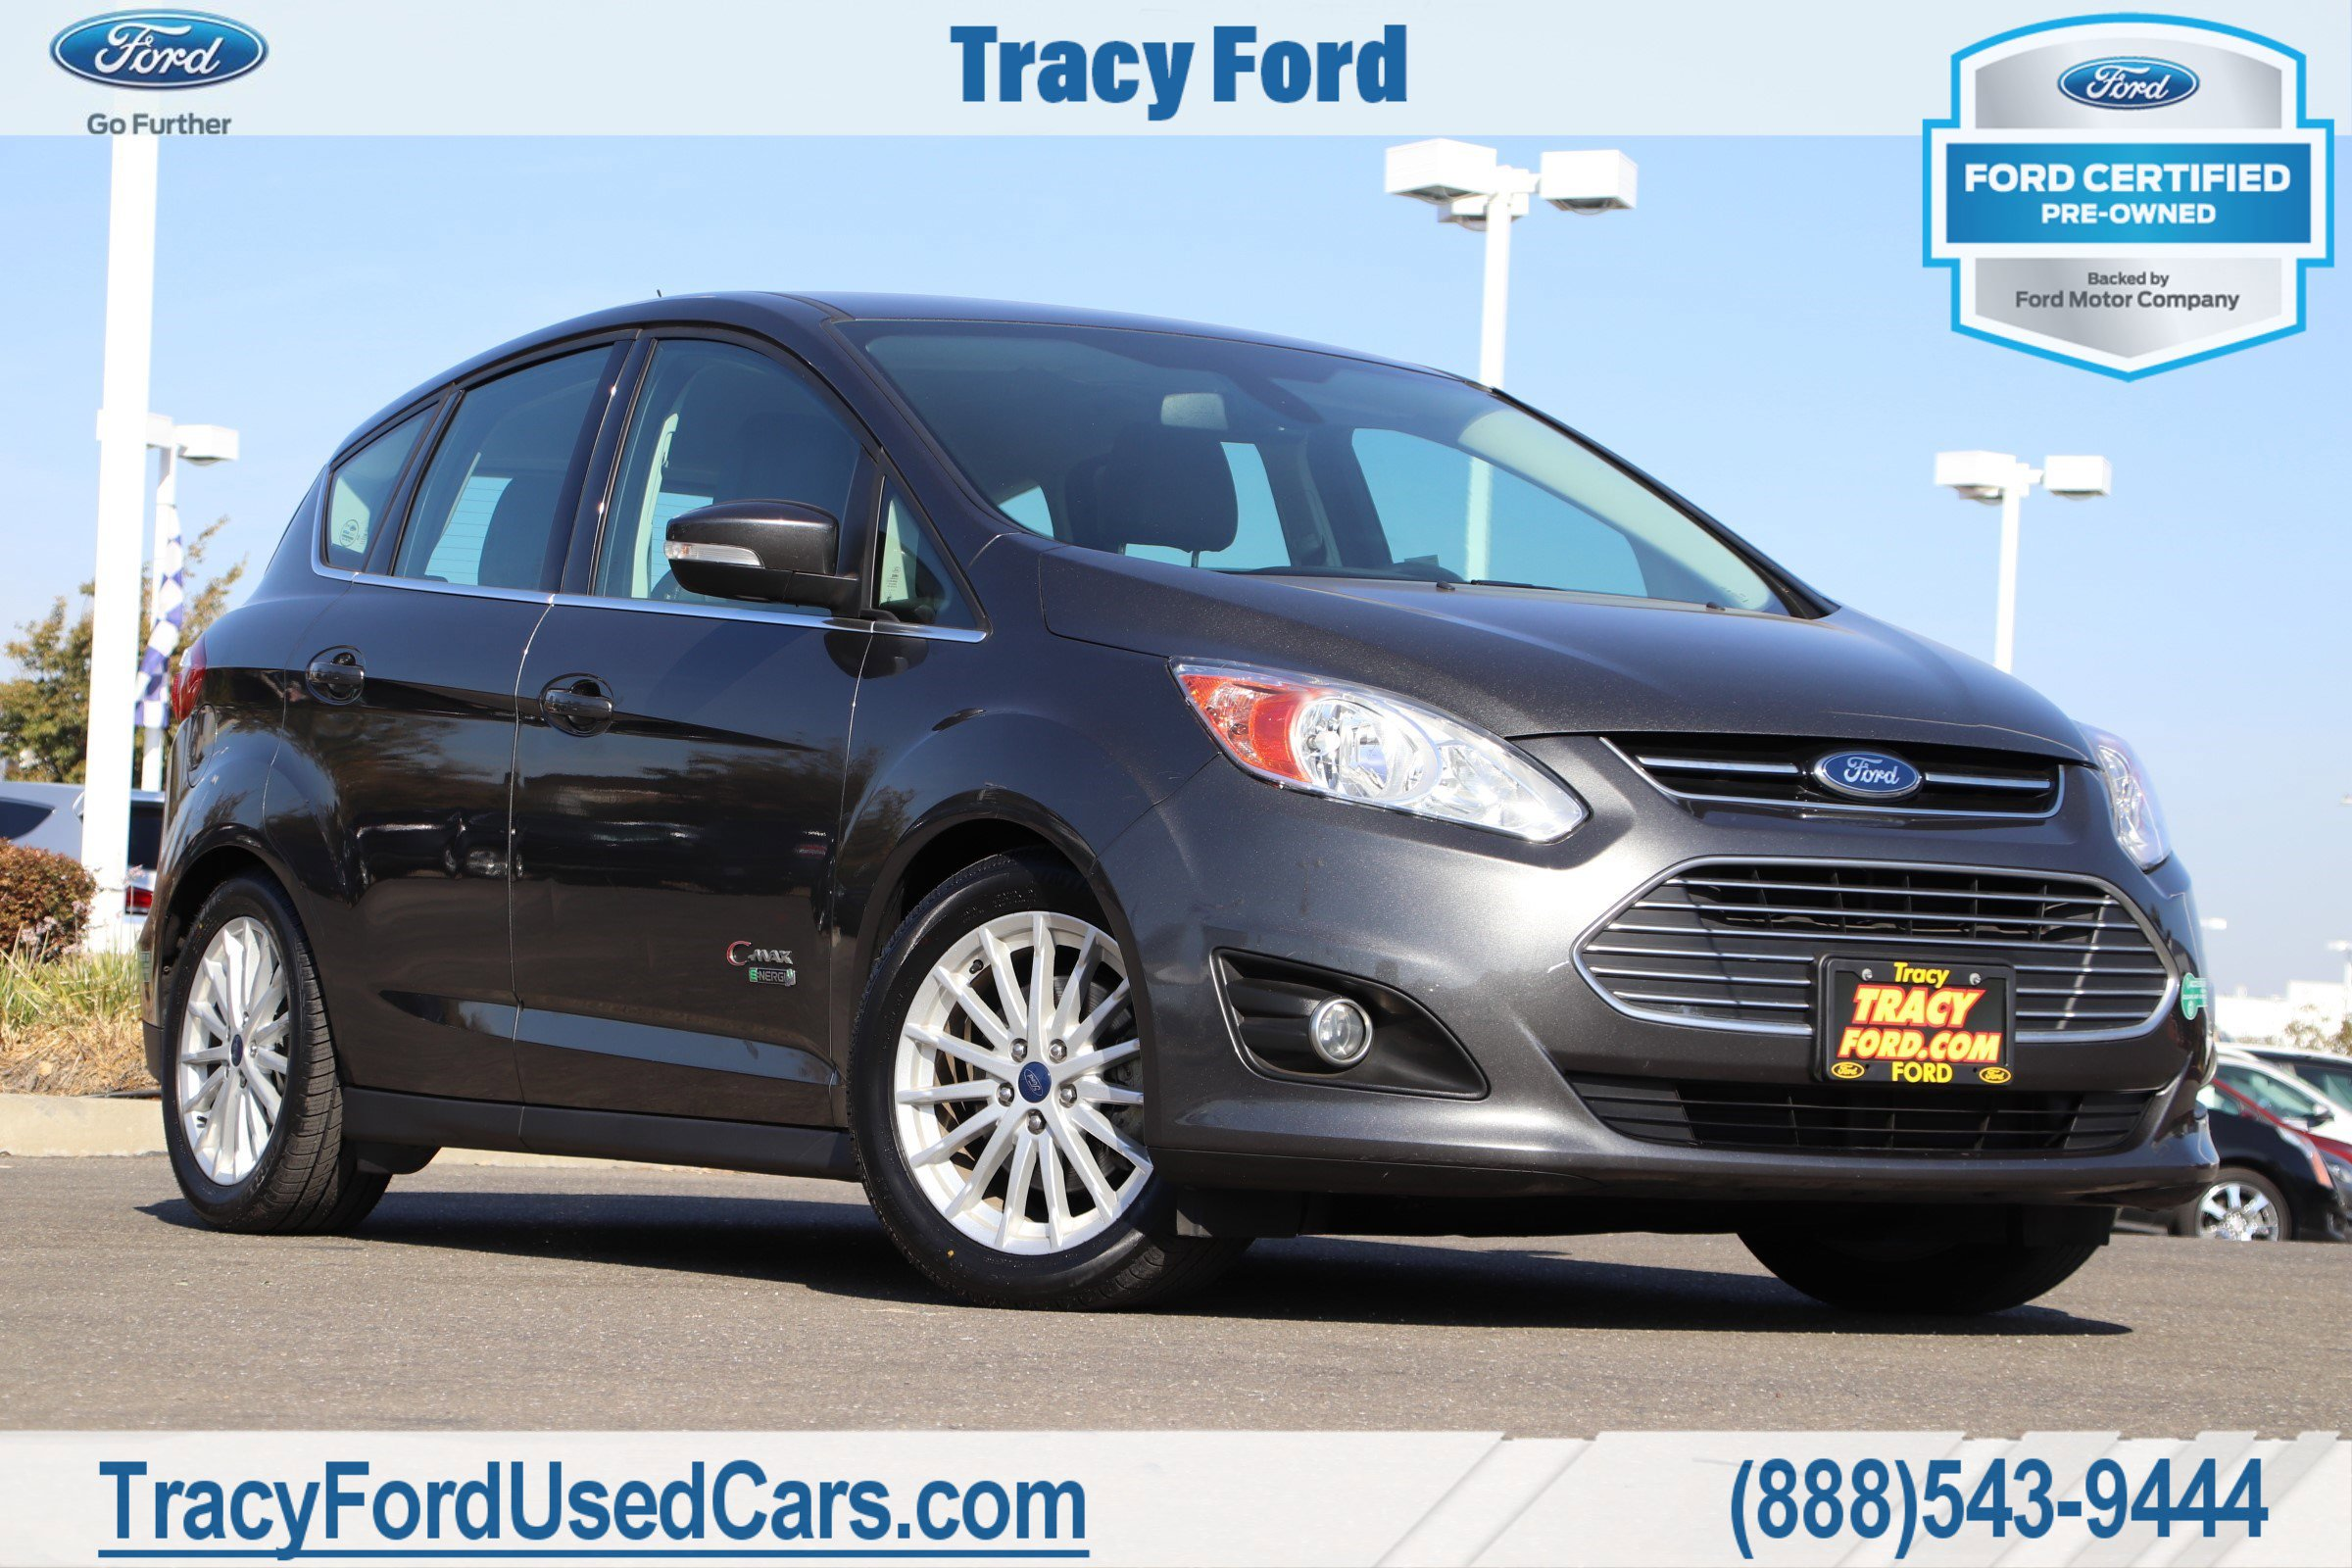 2016 Ford C-MAX SEL image